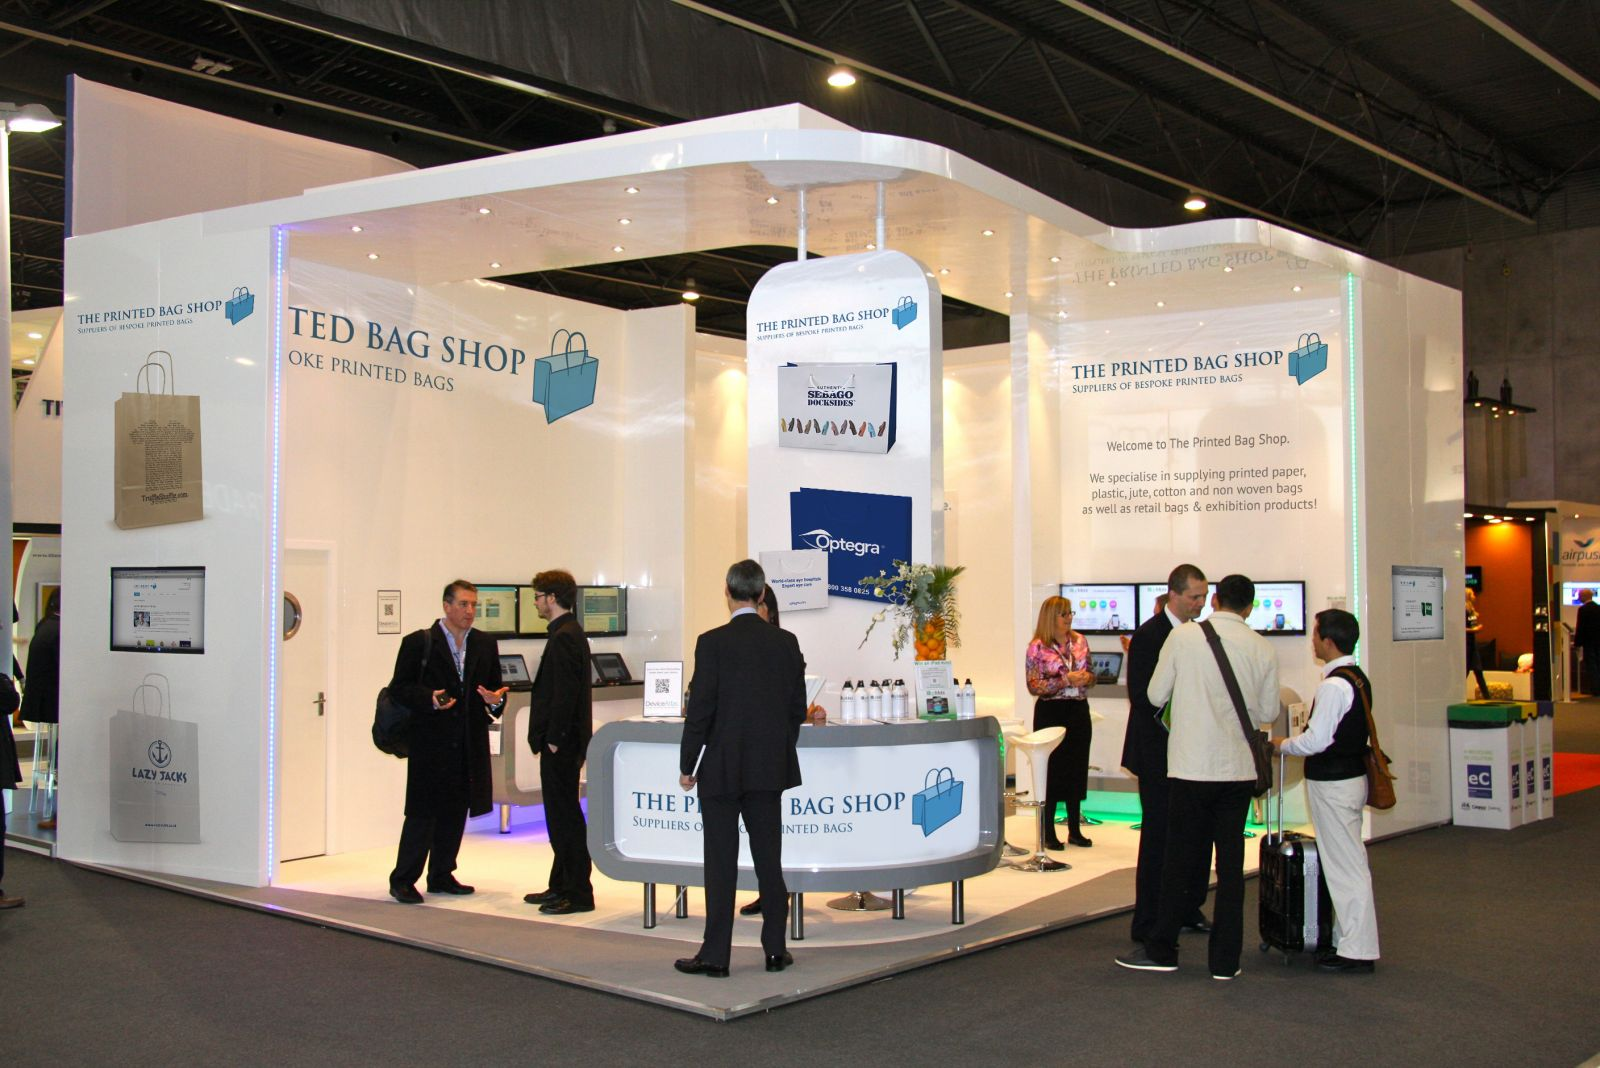 Best Exhibition Stand Design : Top trends for exhibition stand designs the printed bag